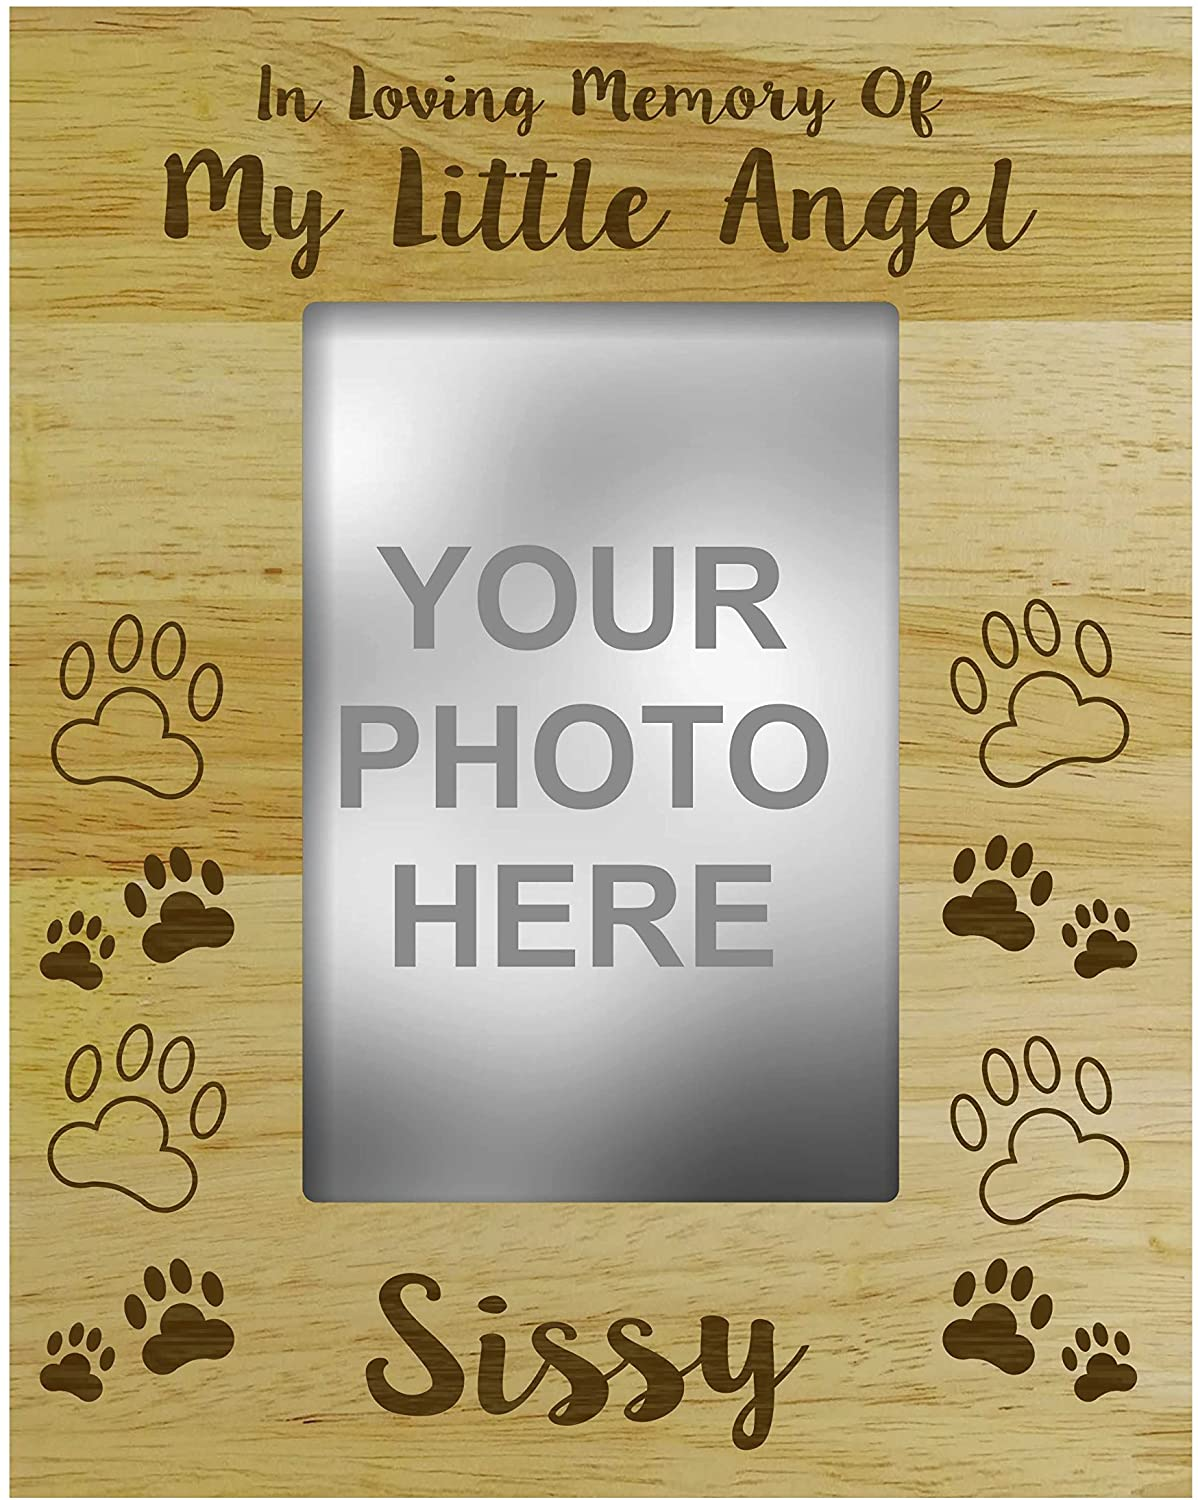 Darling Souvenir MADE WITH LOVE Personalized Wood Engraved Dog Memorial Picture Frame in Loving Memory of My Little Angel Loss of A Pet Gift, Customizable Quote 4 x 6 Inches Vertical